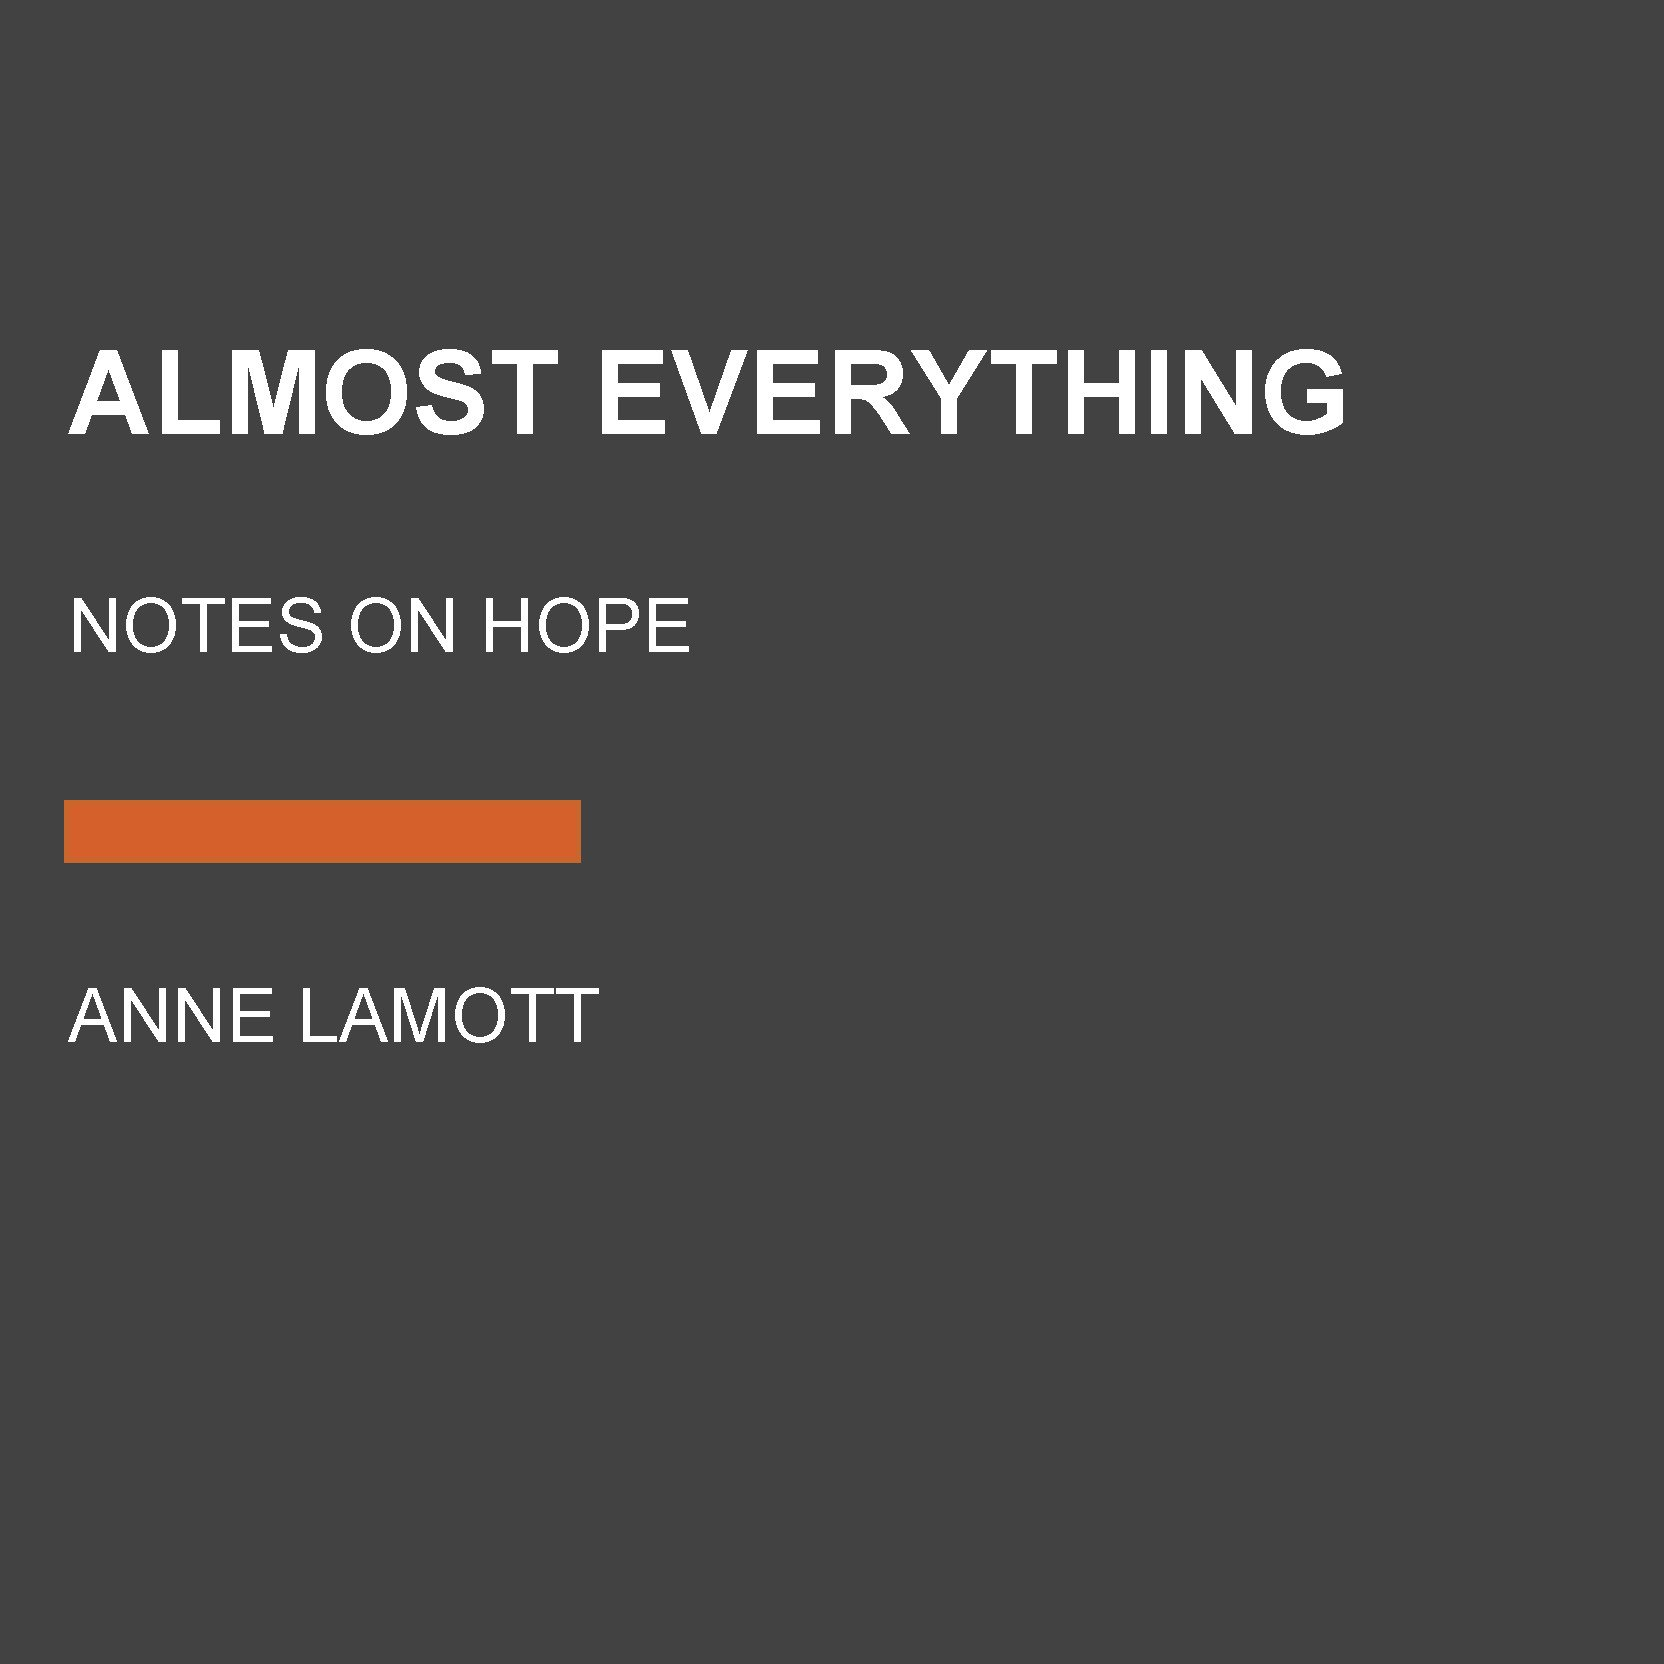 Almost everything notes on hope anne lamott 9780525640516 amazon almost everything notes on hope anne lamott 9780525640516 amazon books fandeluxe Image collections